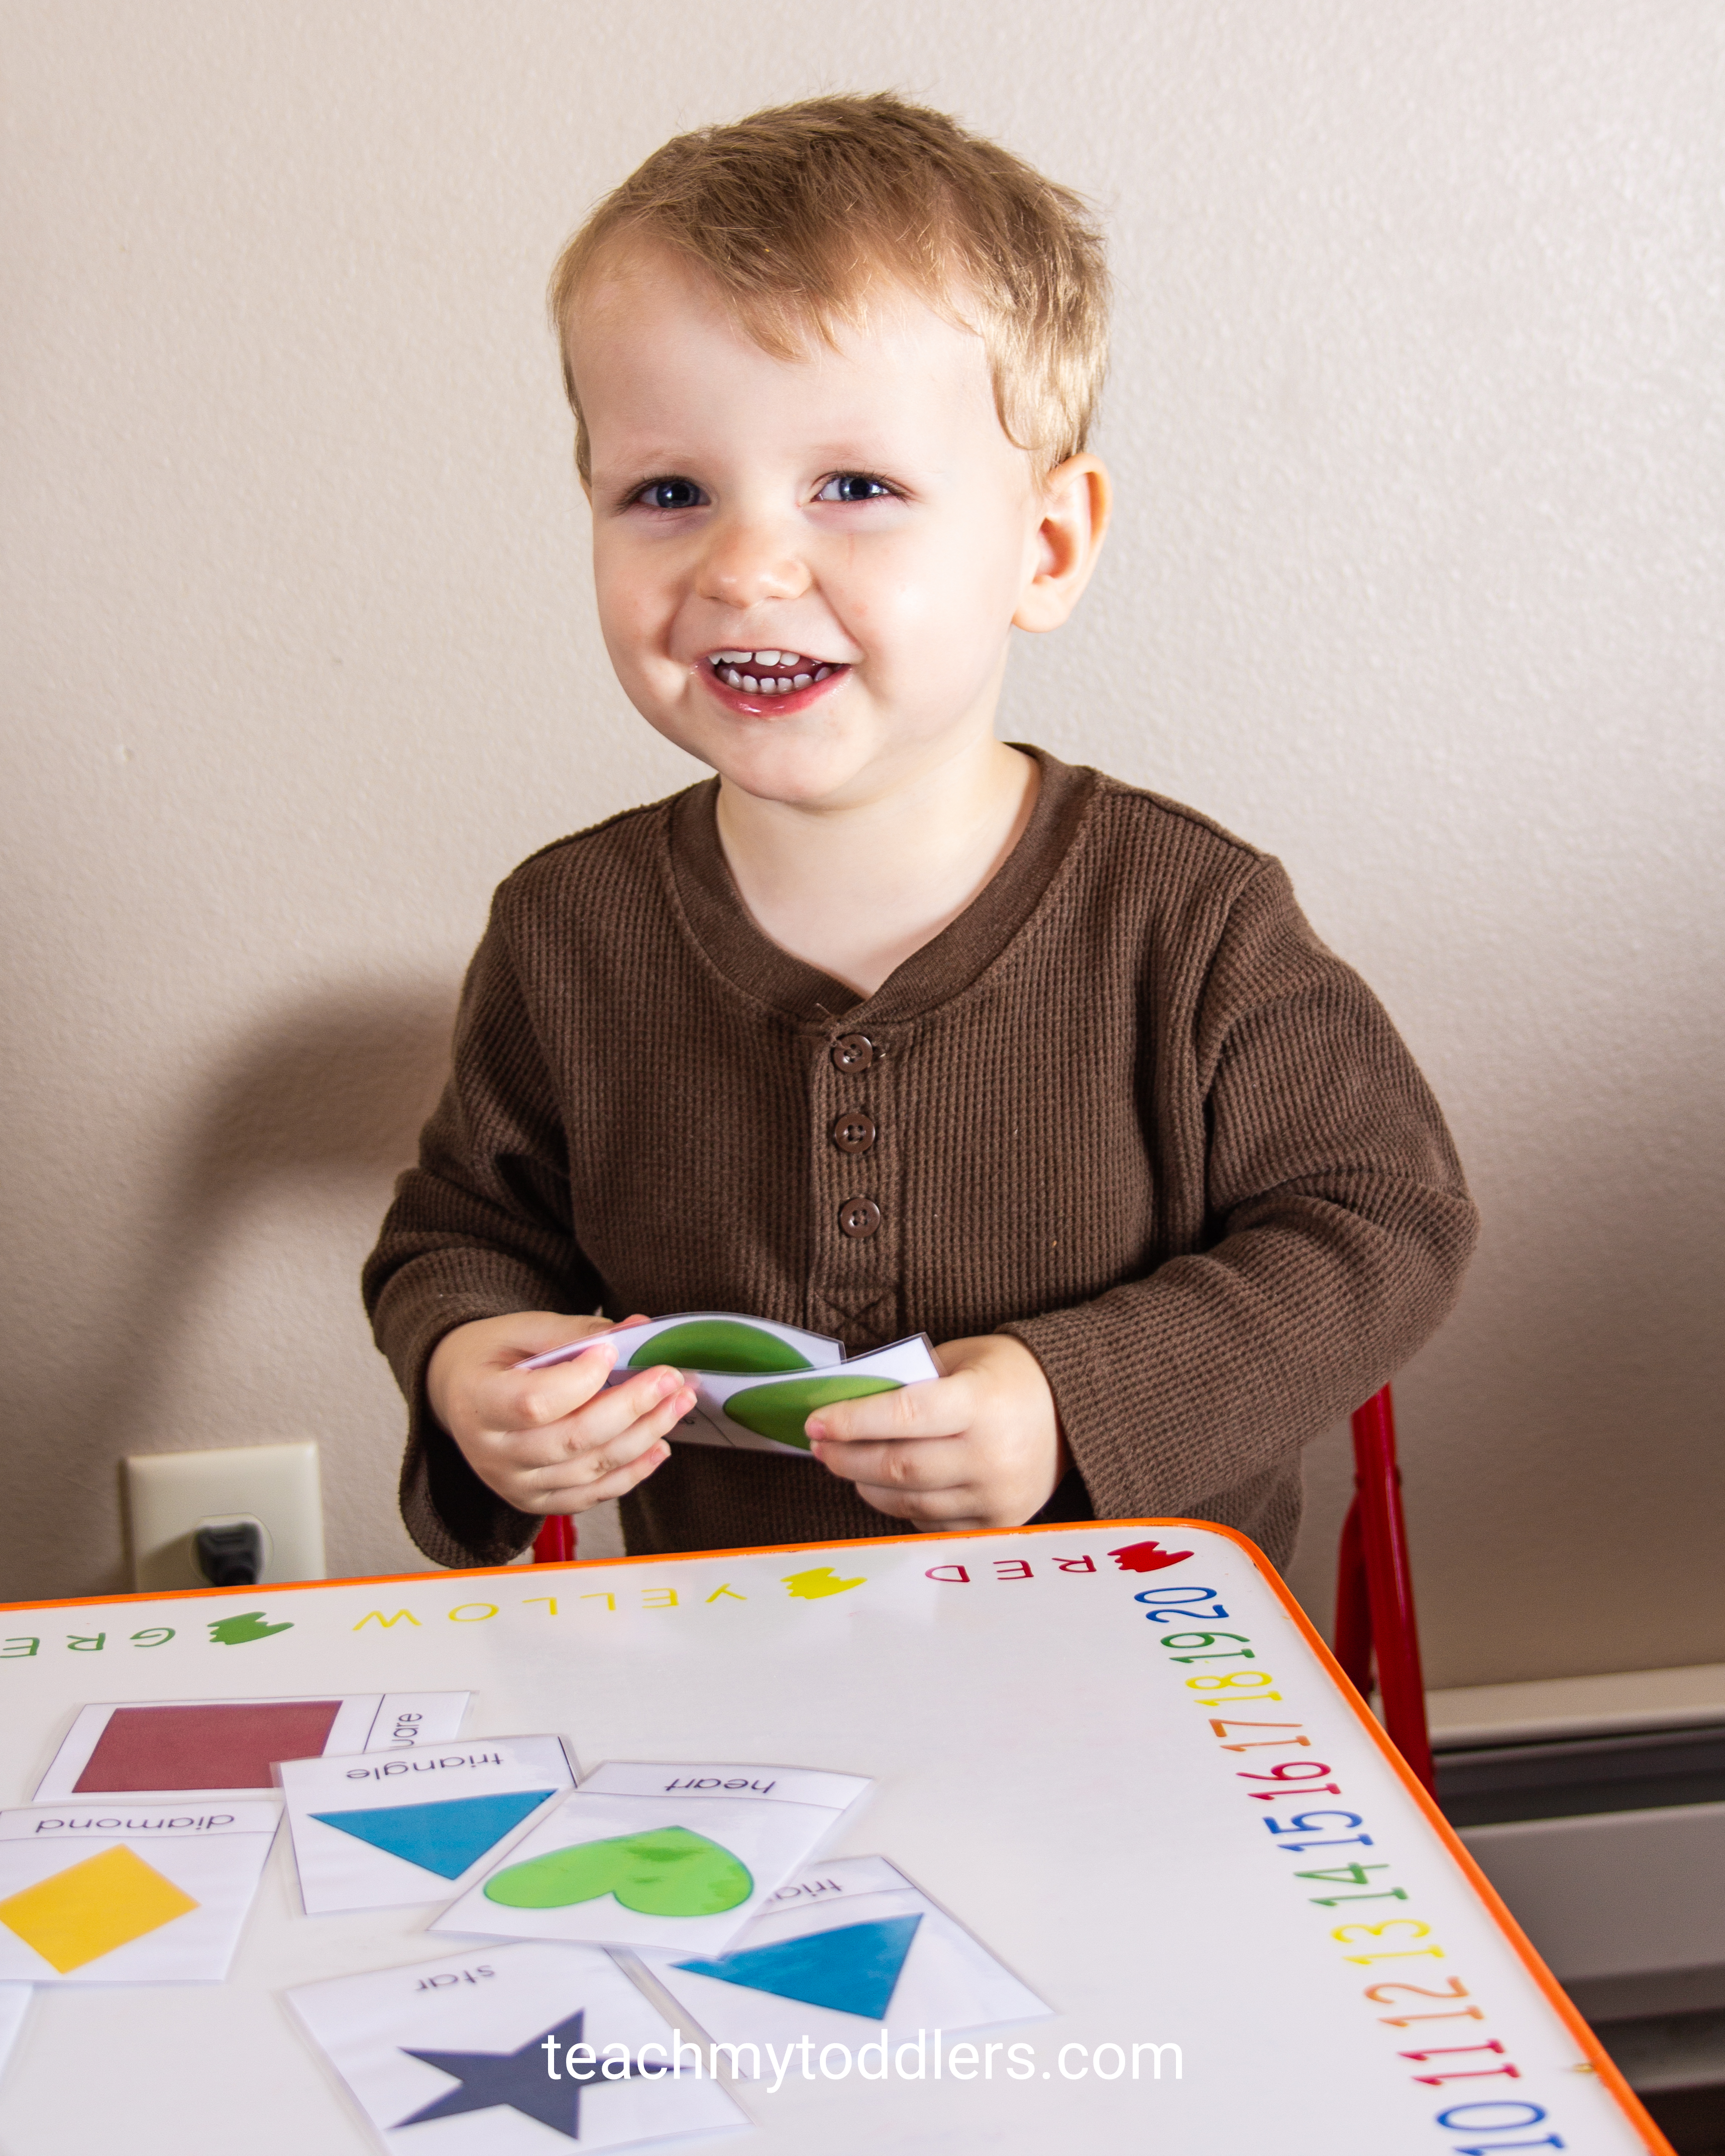 Discover how to use this shape cards activity to teach your preschoolers shapes